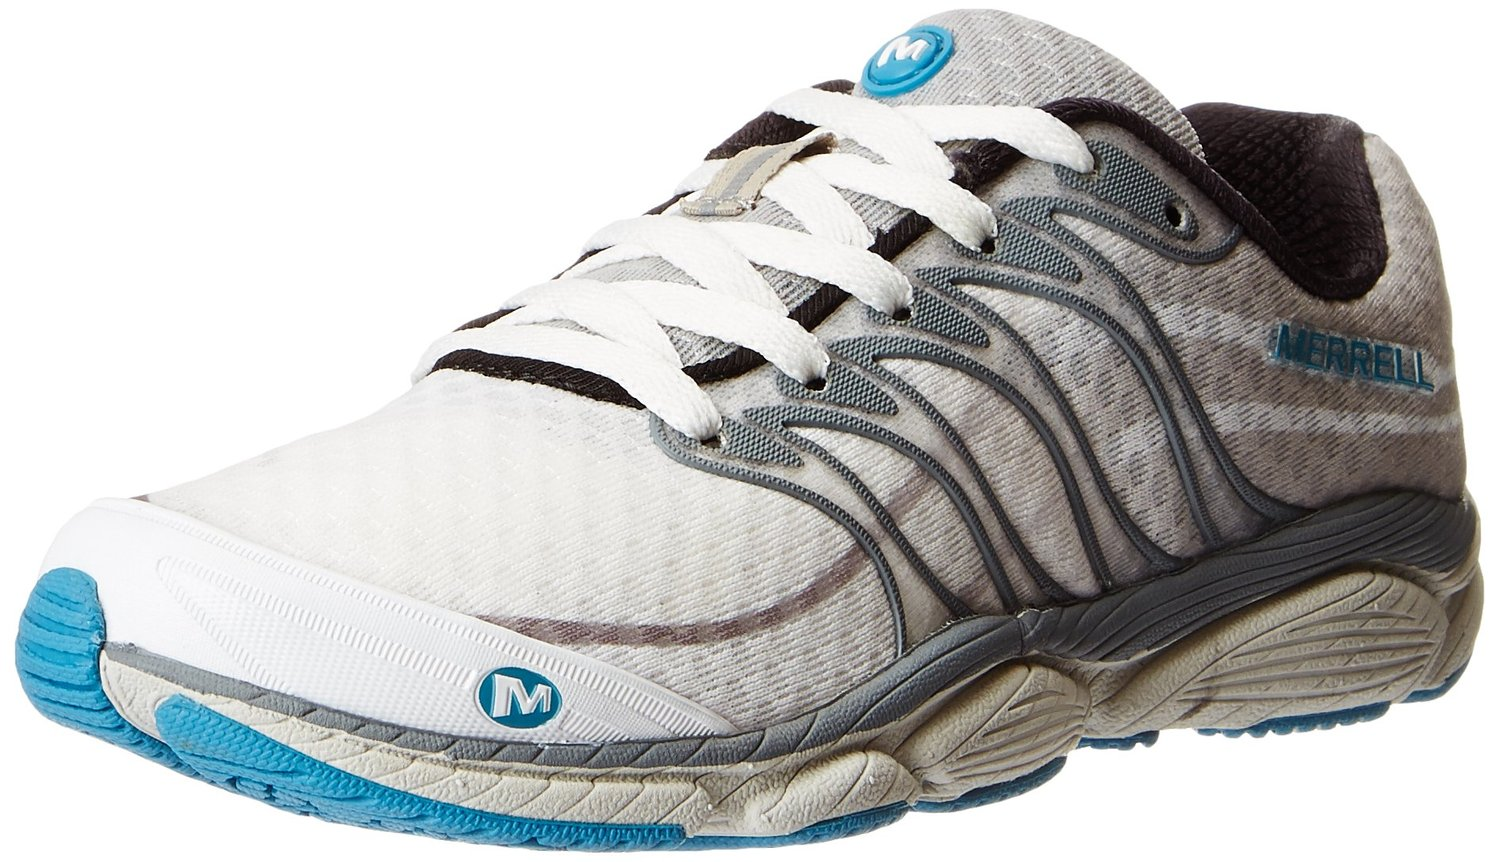 57adccfeb933 Merrell All Out Flash Trail Running Shoe White